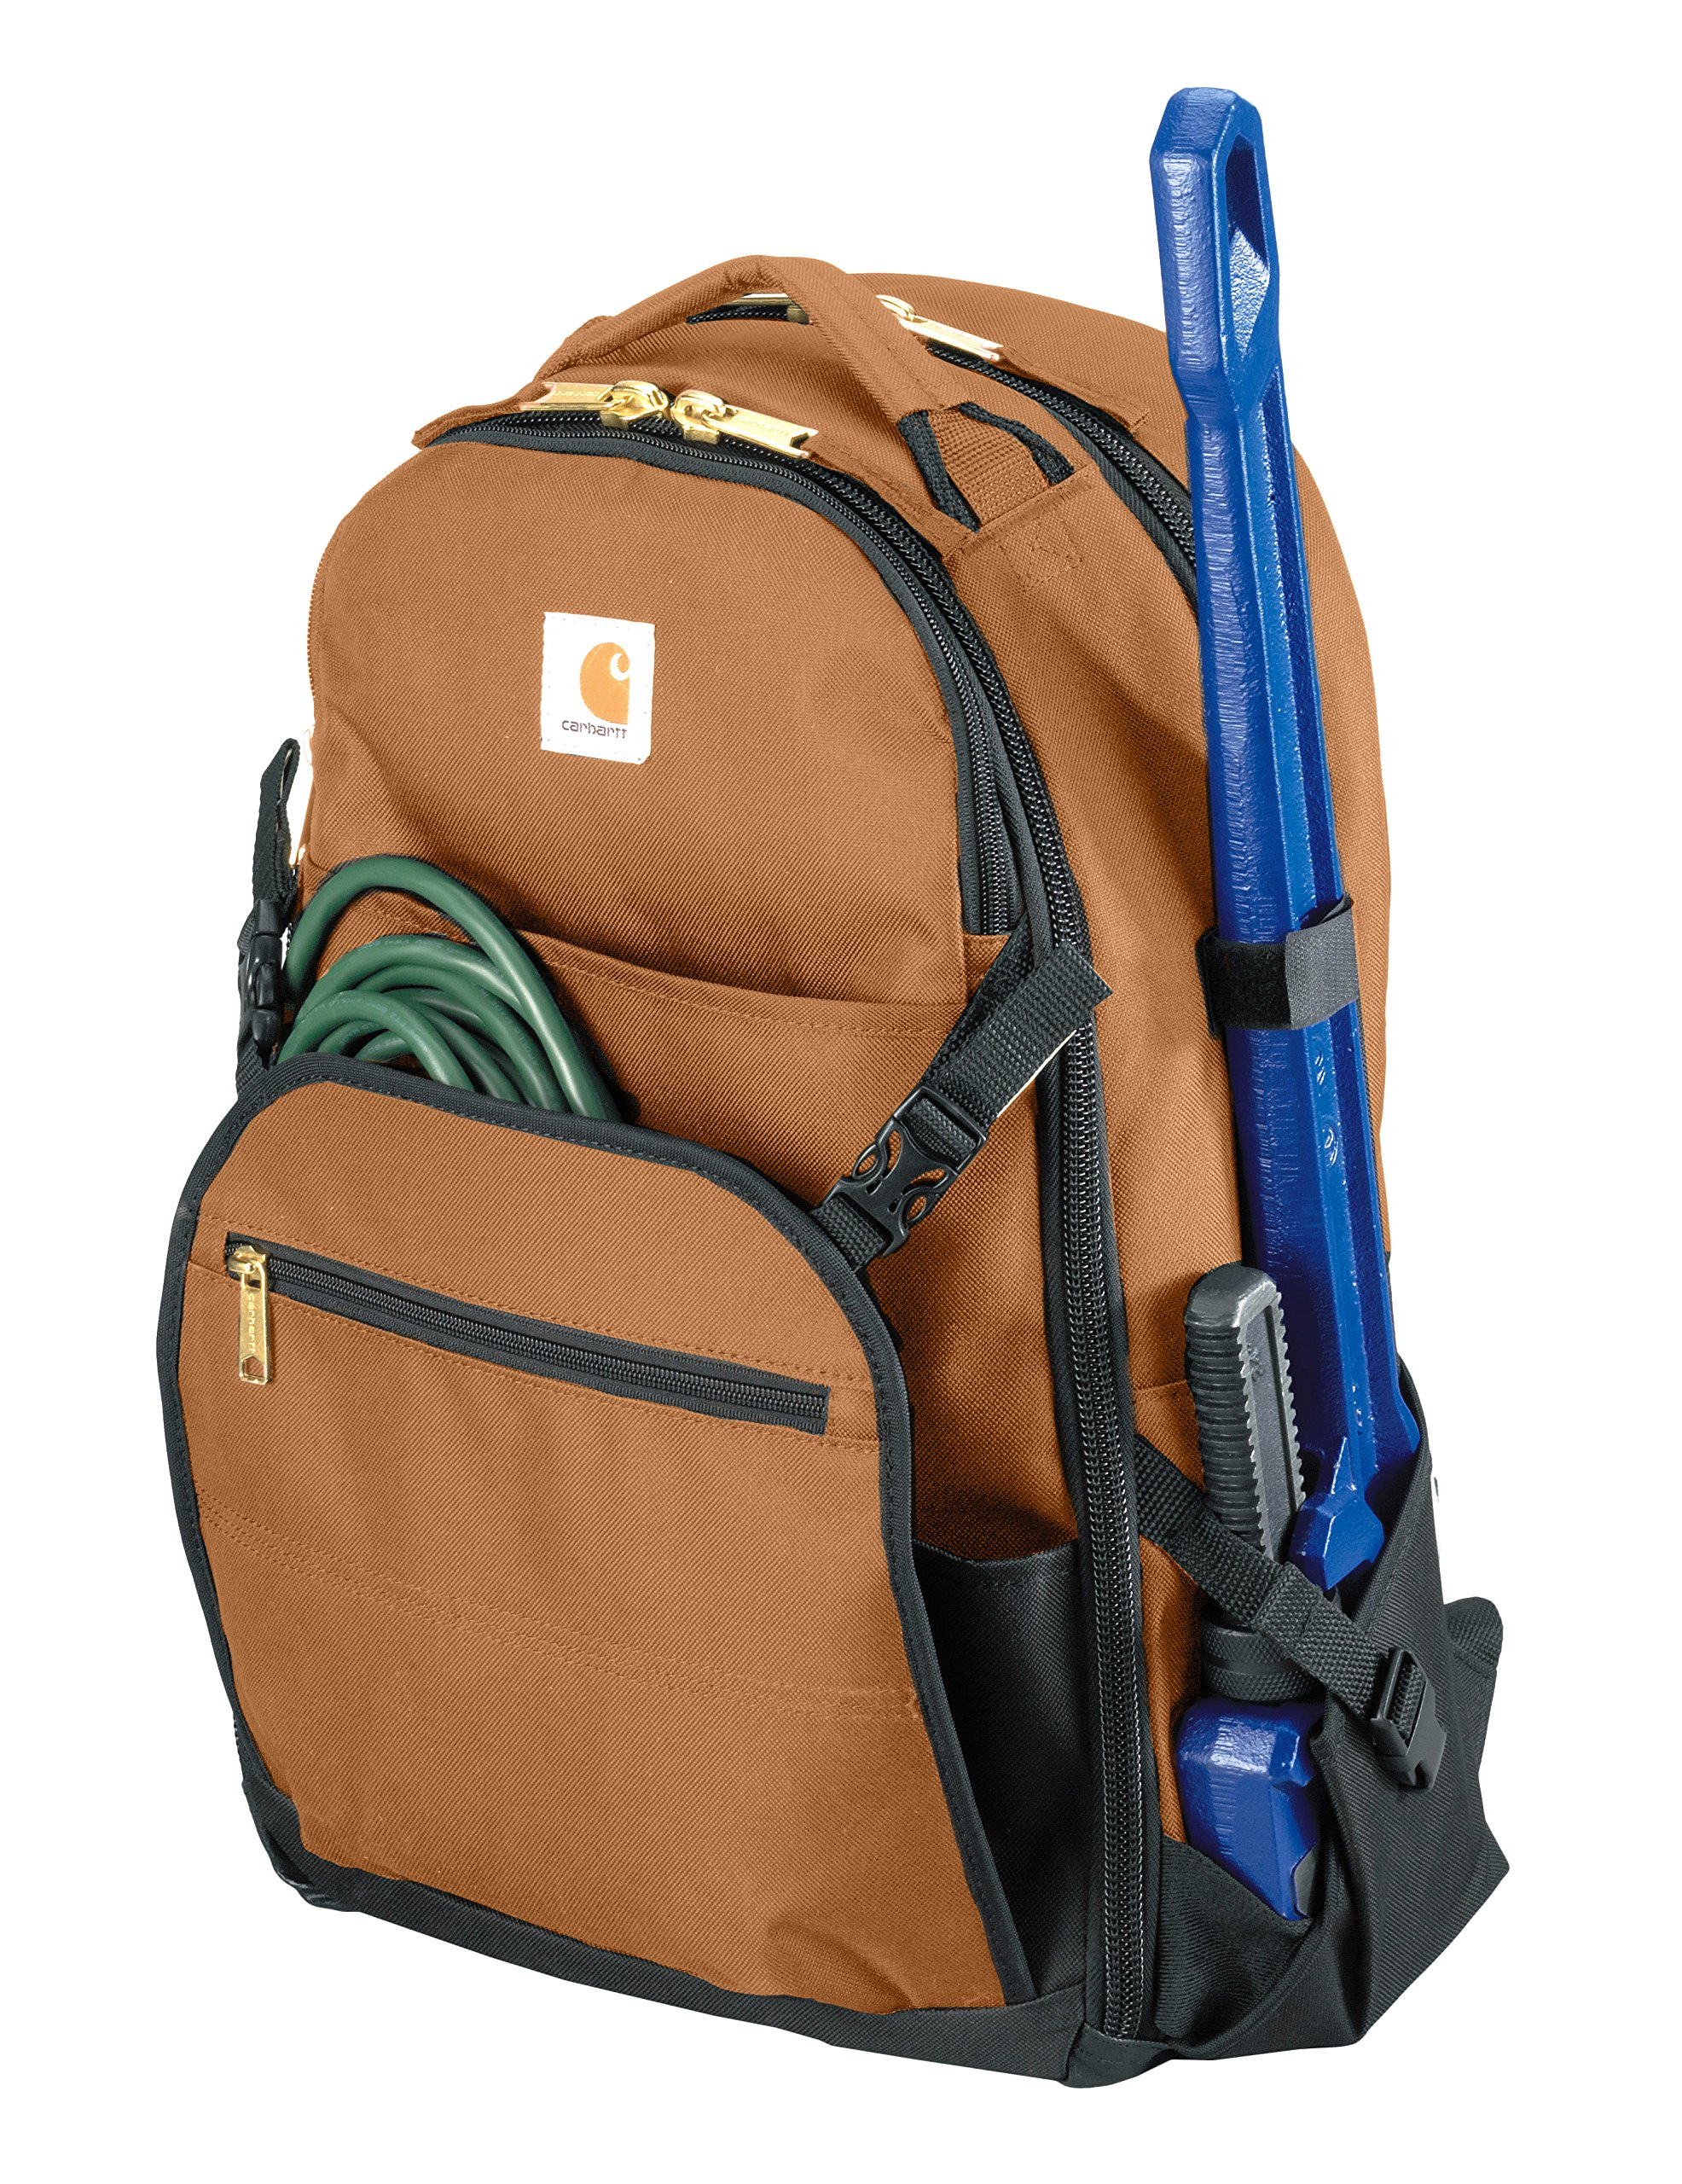 Details about Carhartt Legacy Expandable-Front Tool Backpack